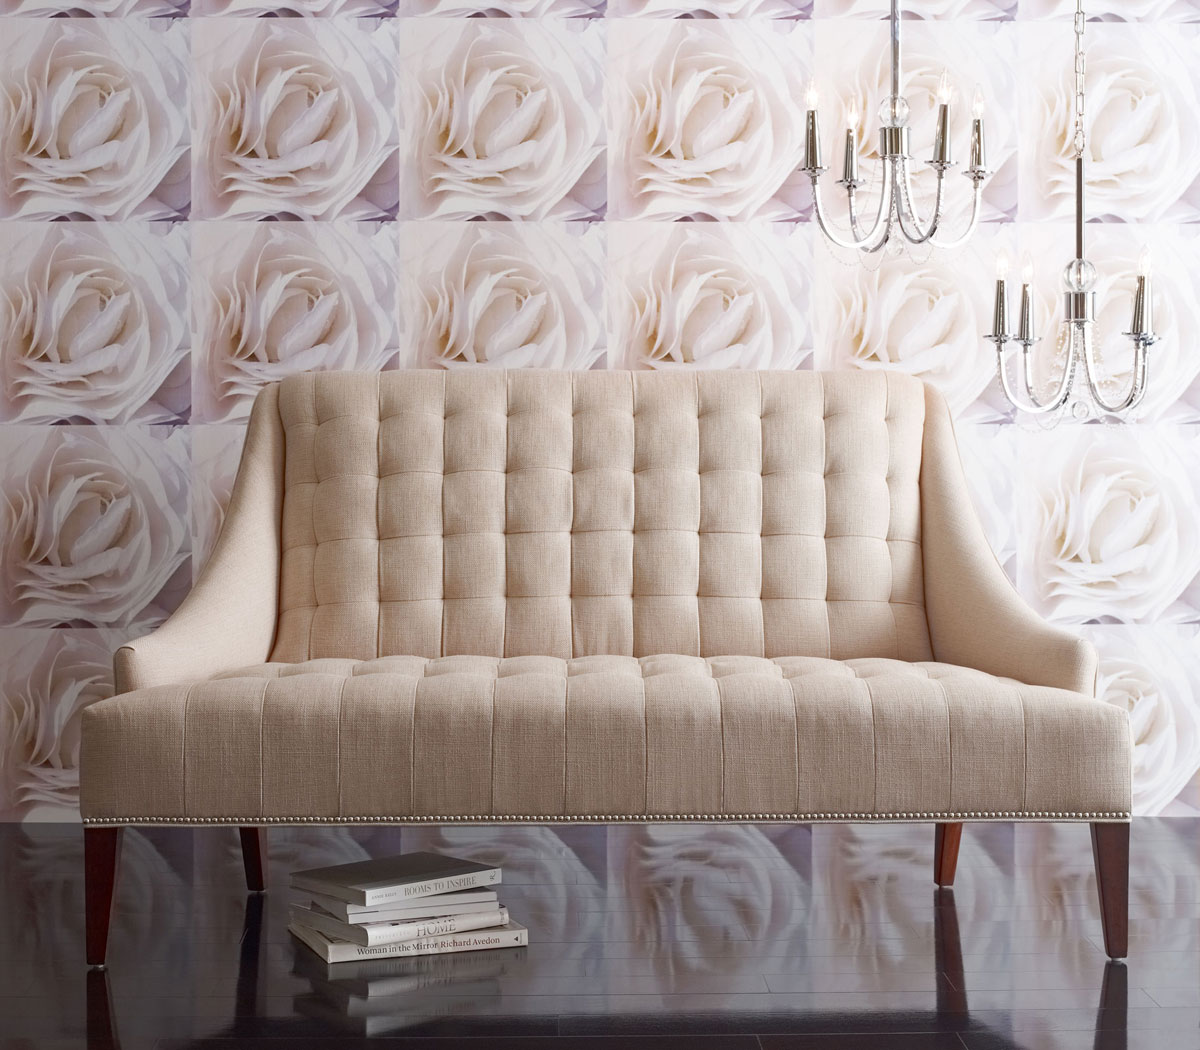 Candice Olson Living Room Decorating Ideas: 2013 Candice Olson's Living Room Furniture Collection